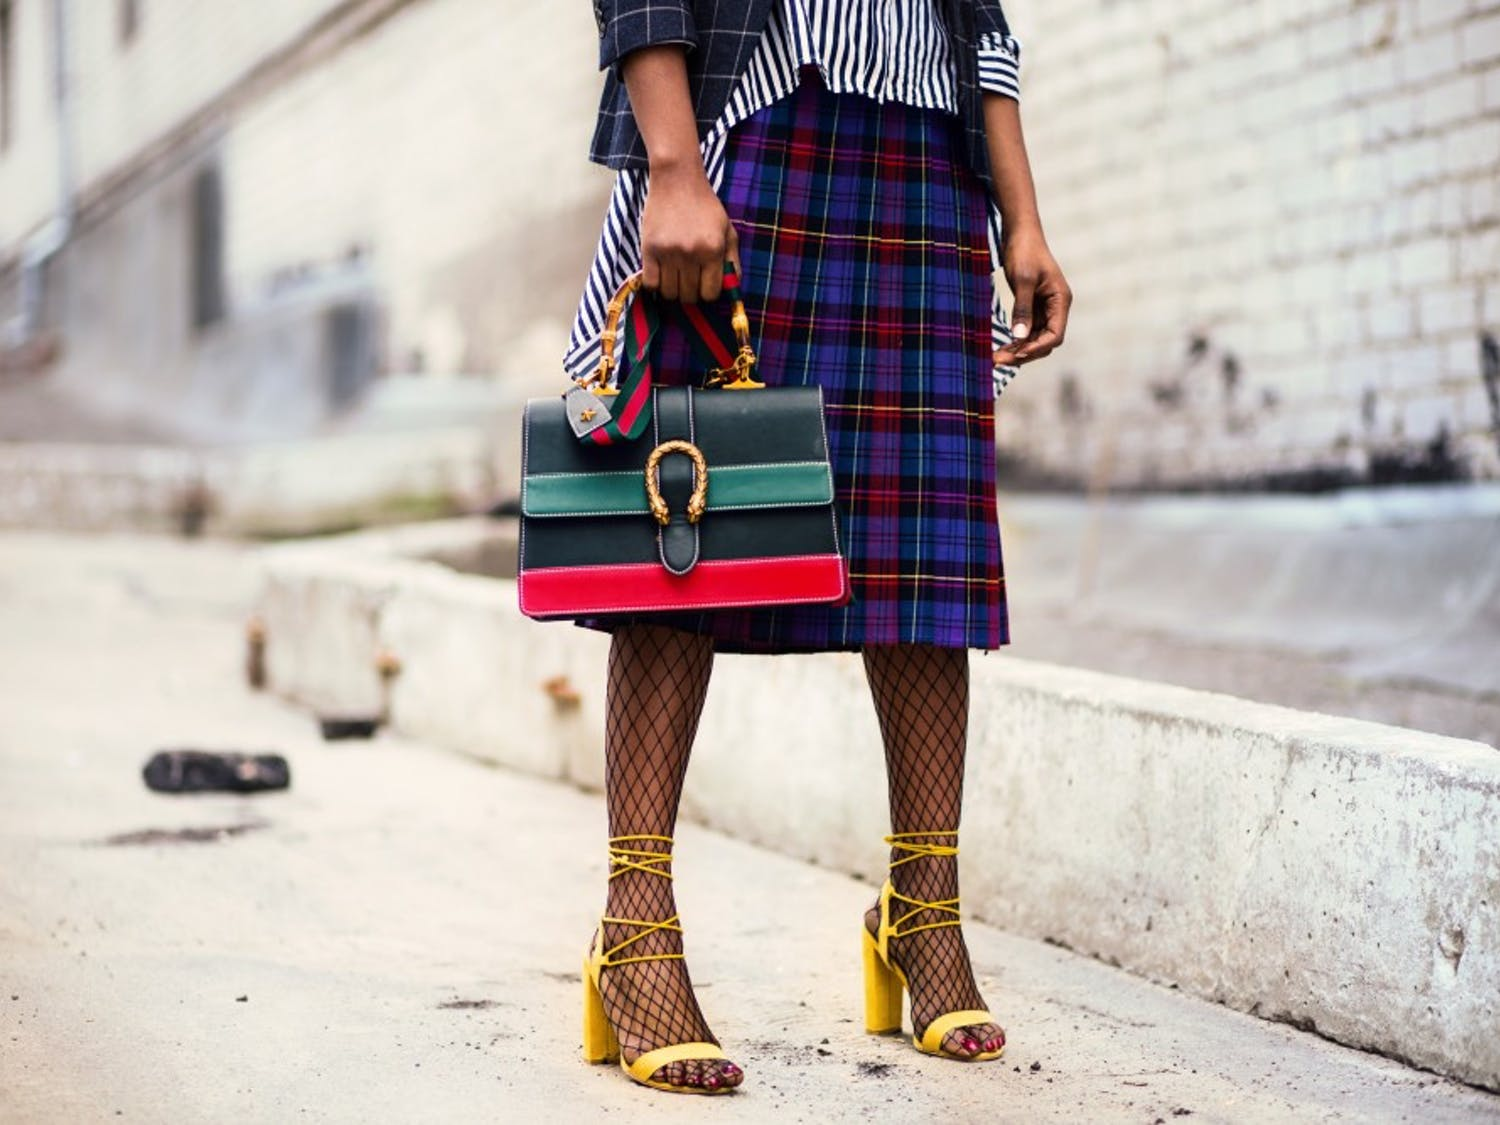 Colorful plaid prints and tights are two of many upcoming fall trends you will see hit the halls of UB this semester.